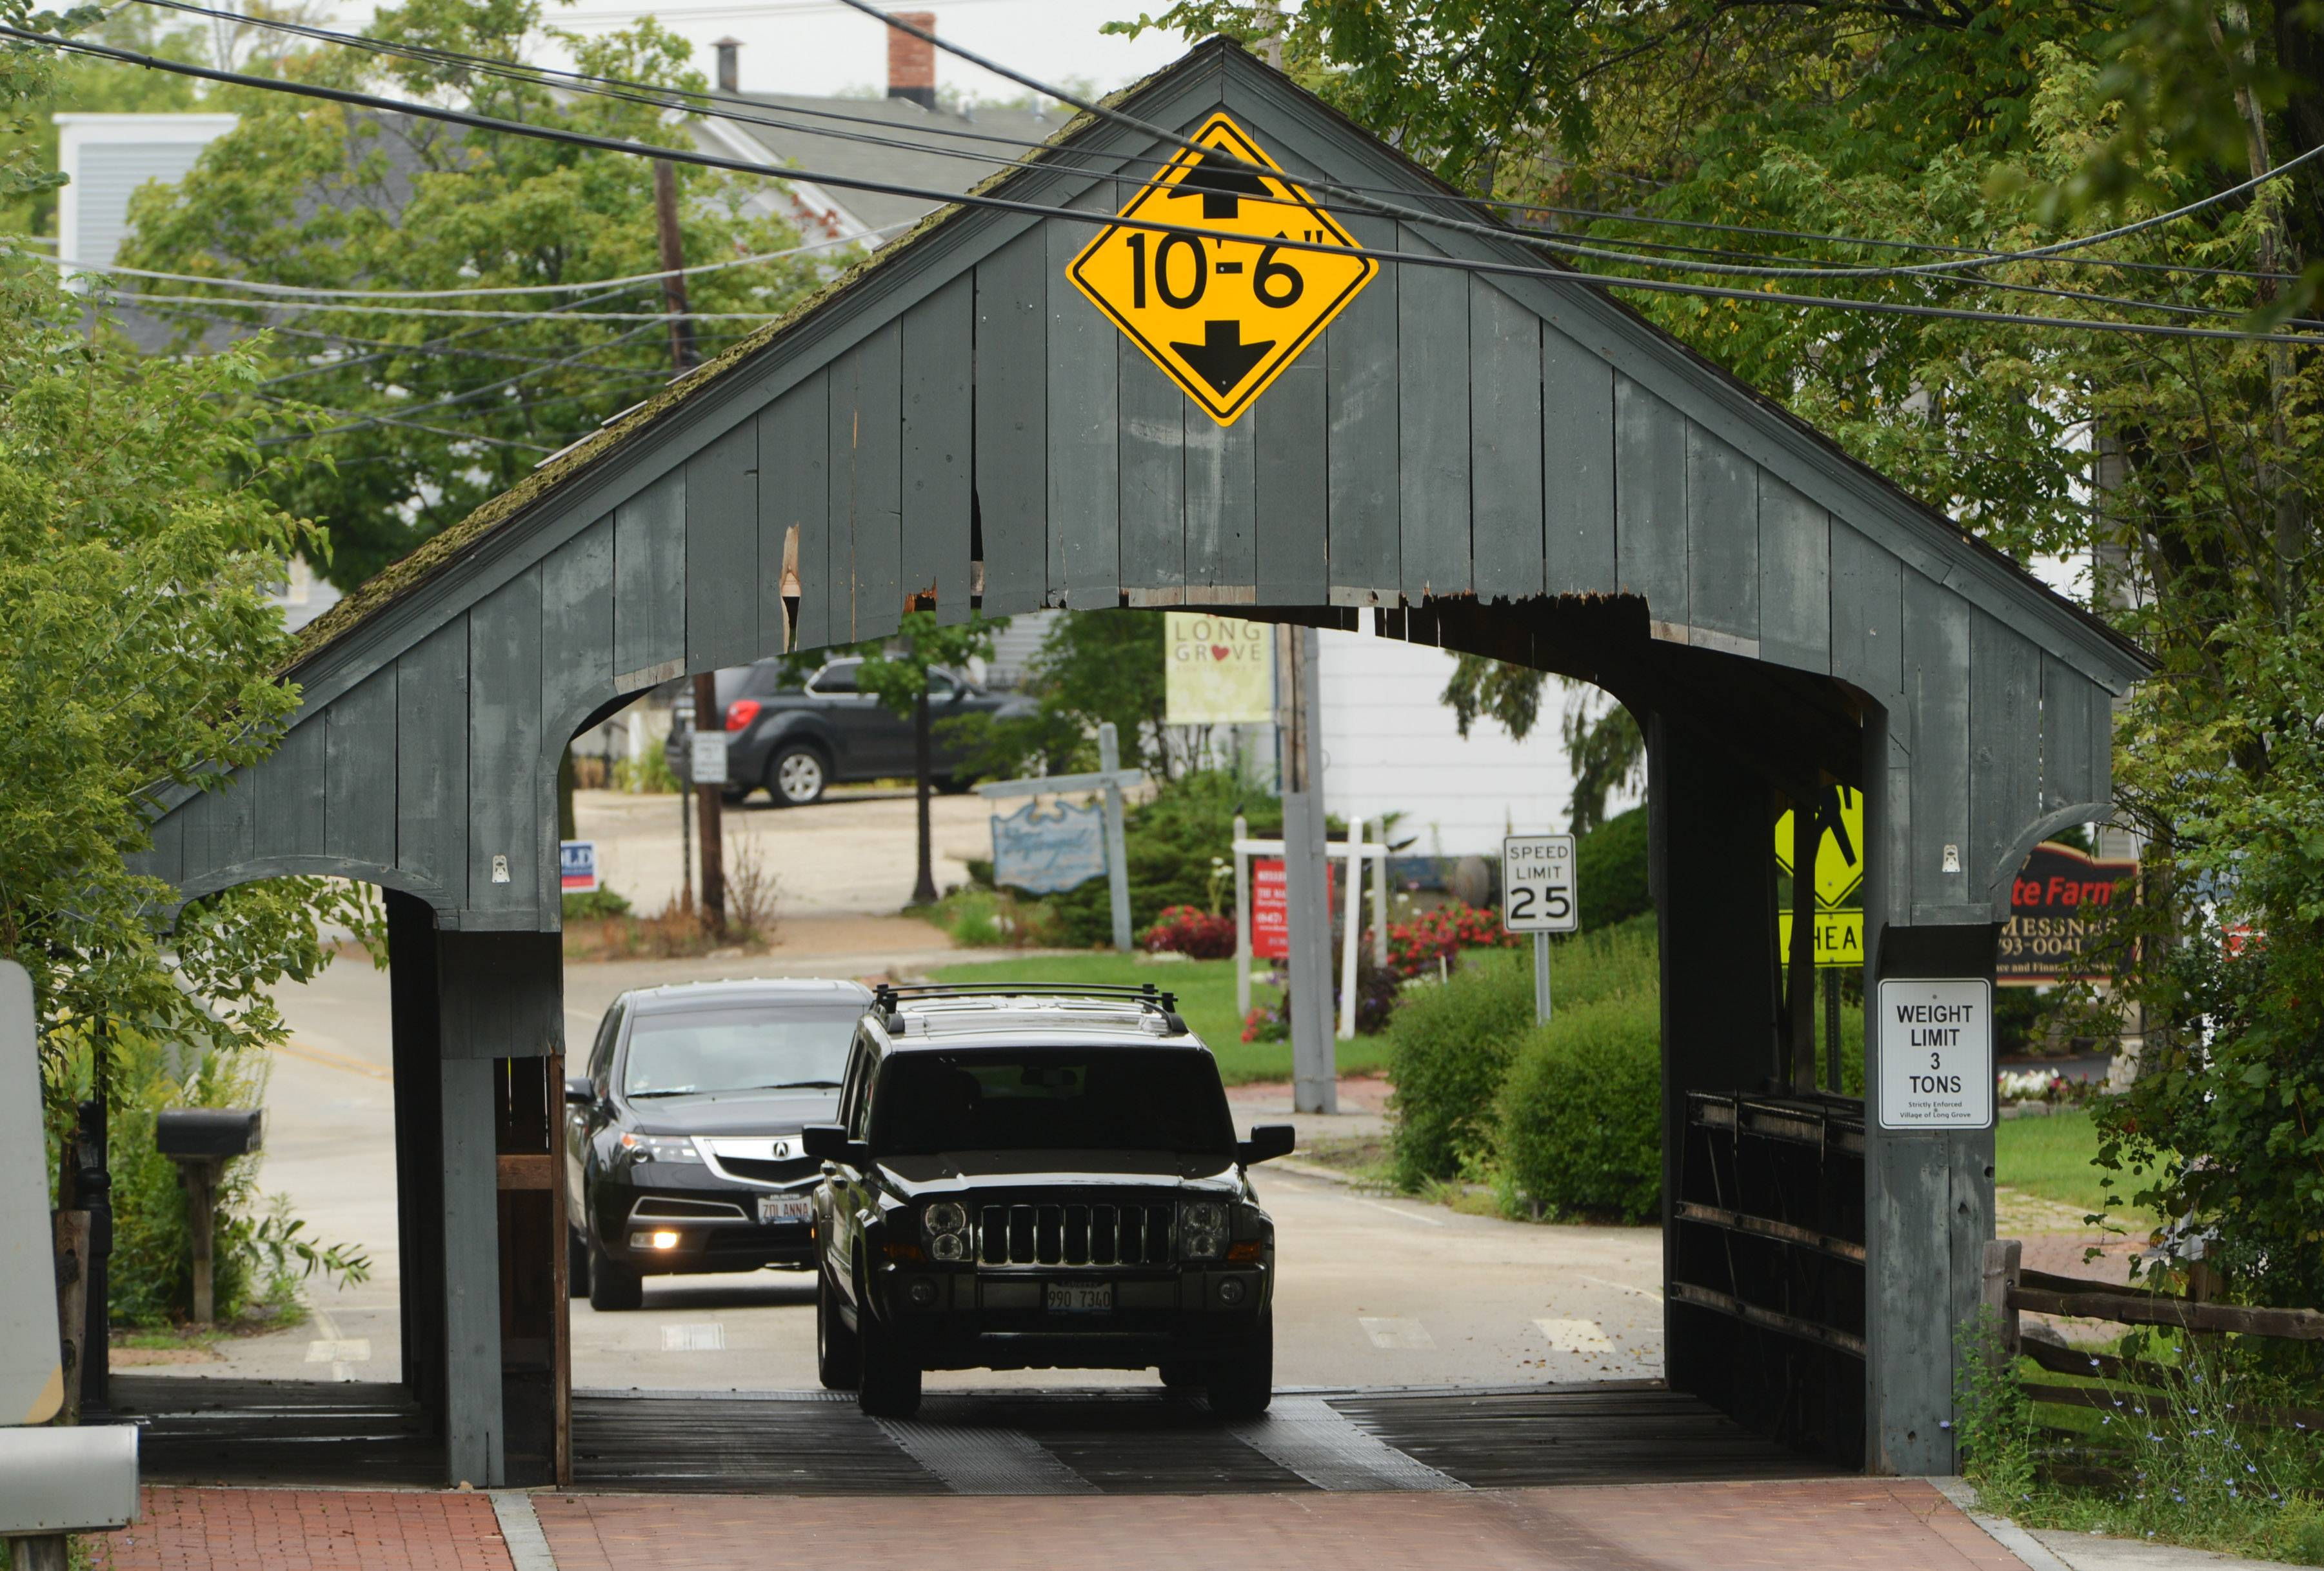 Long Grove debating whether to renovate or replace iconic covered bridge